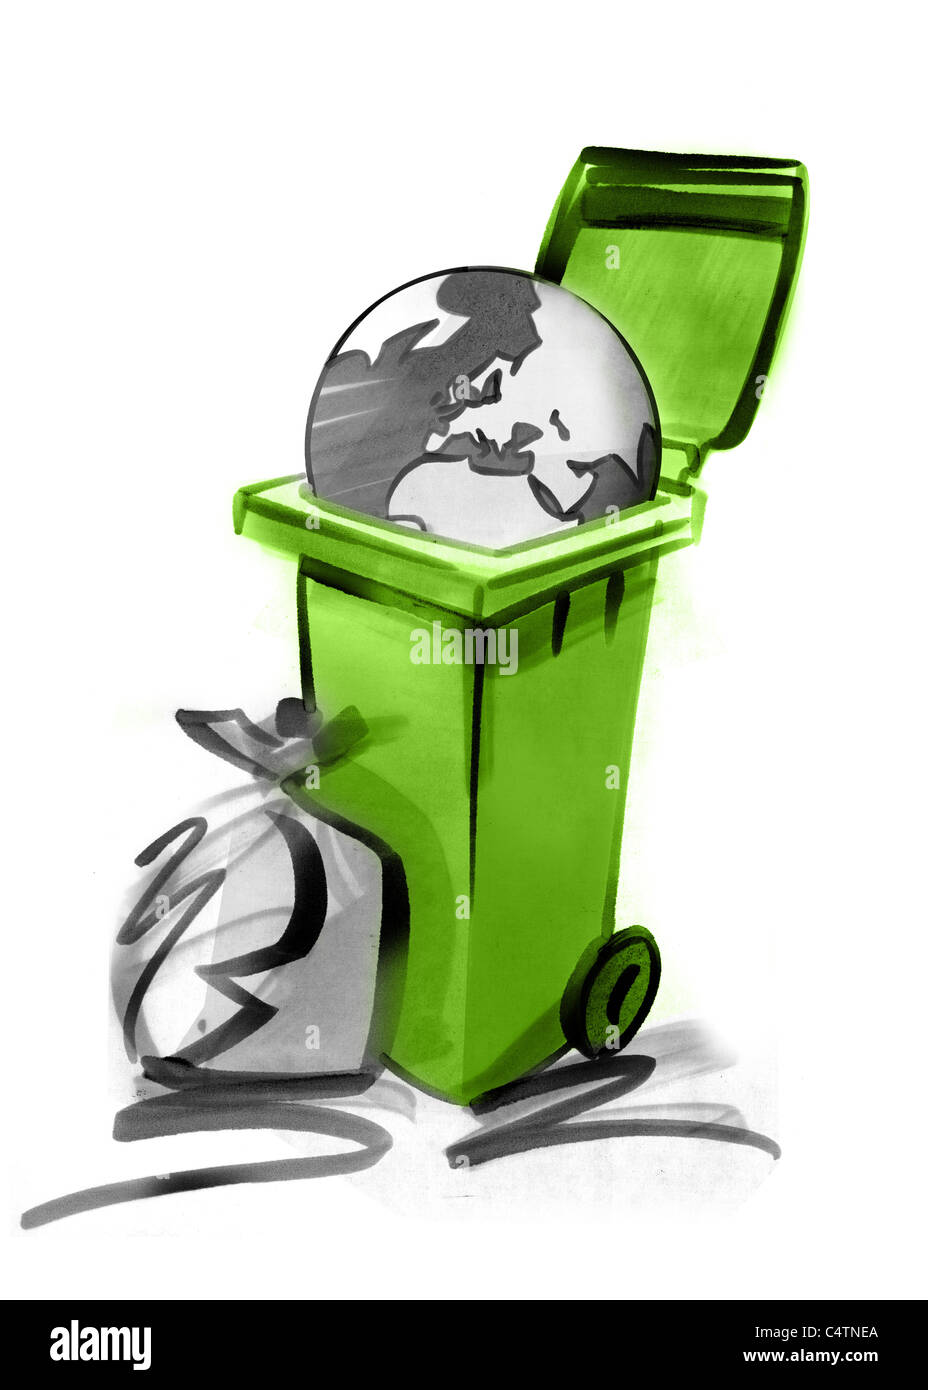 Planet in garbage can - Stock Image